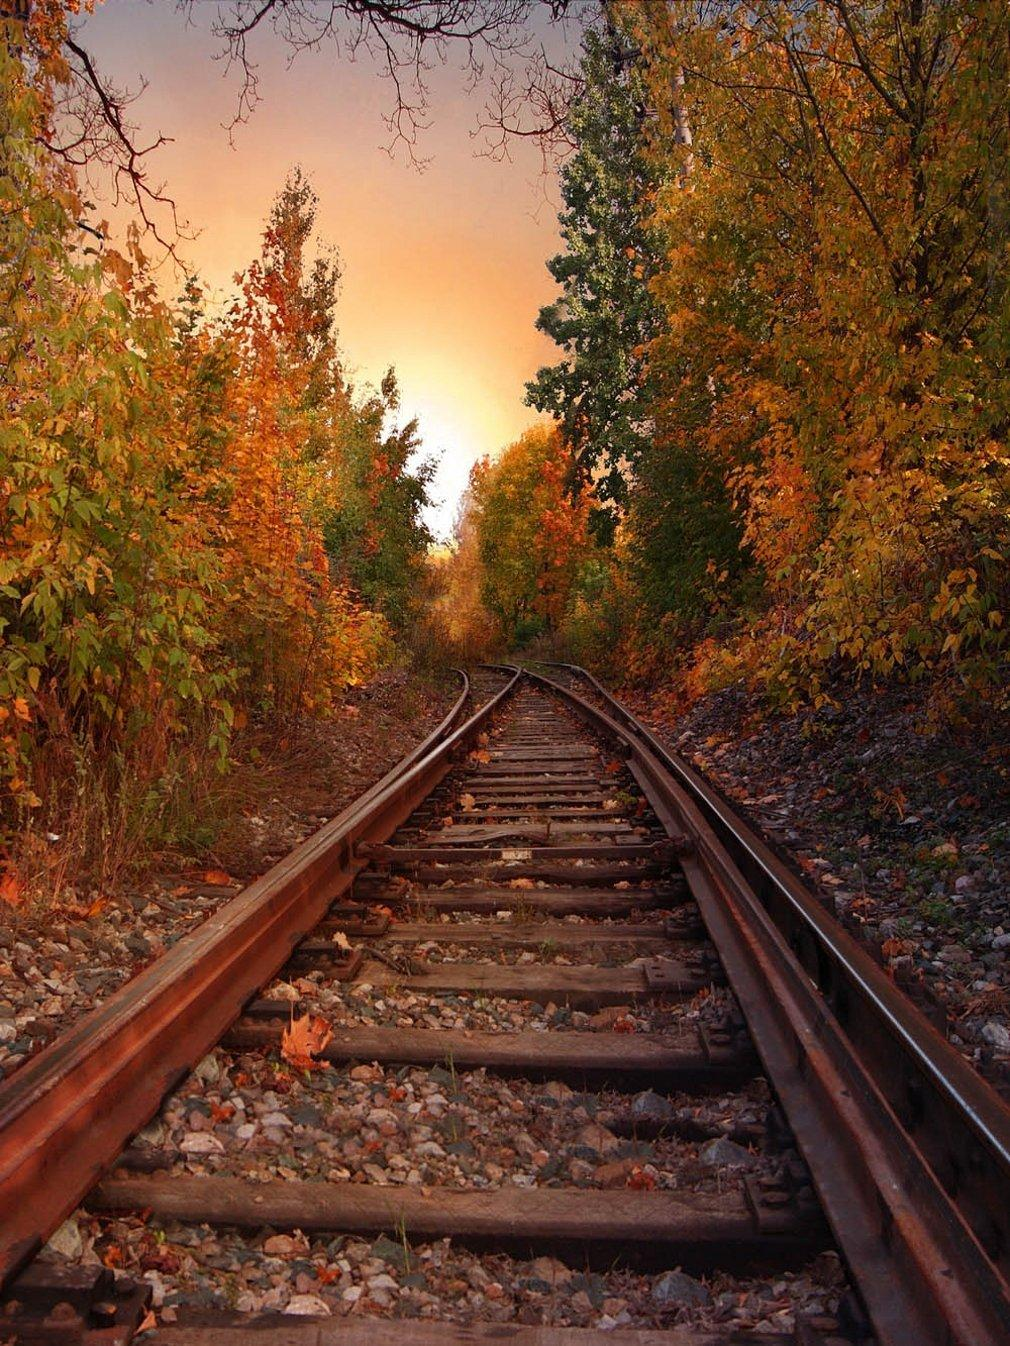 2019 railway photography background countryside autumn scenery forest trees outdoor nature view fall scenic photo backdrops for studio from backdropstore